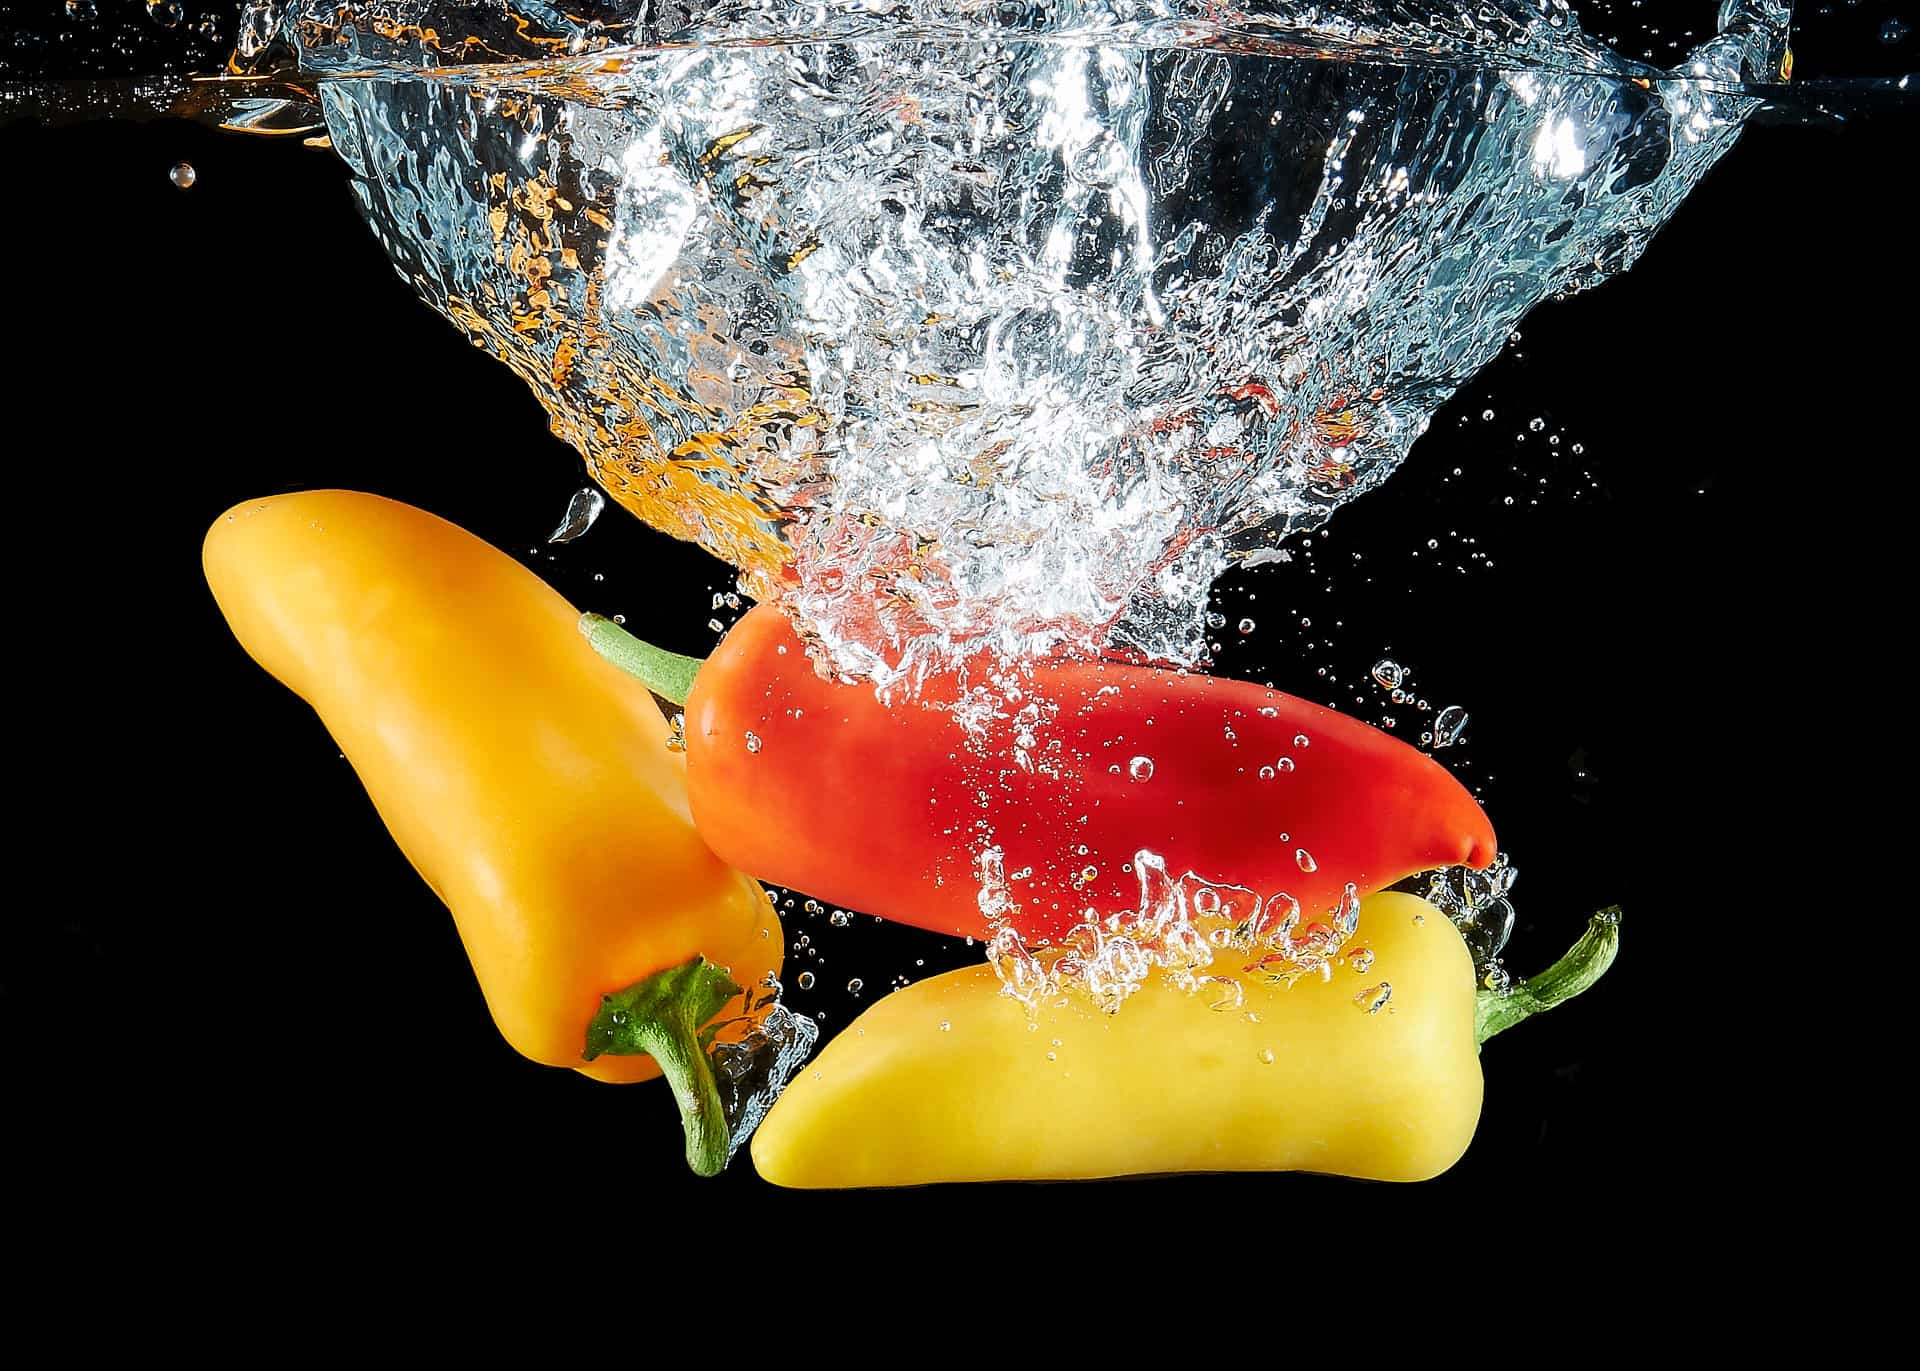 Sweet red, yellow and orange pepper splashed in water on black background.